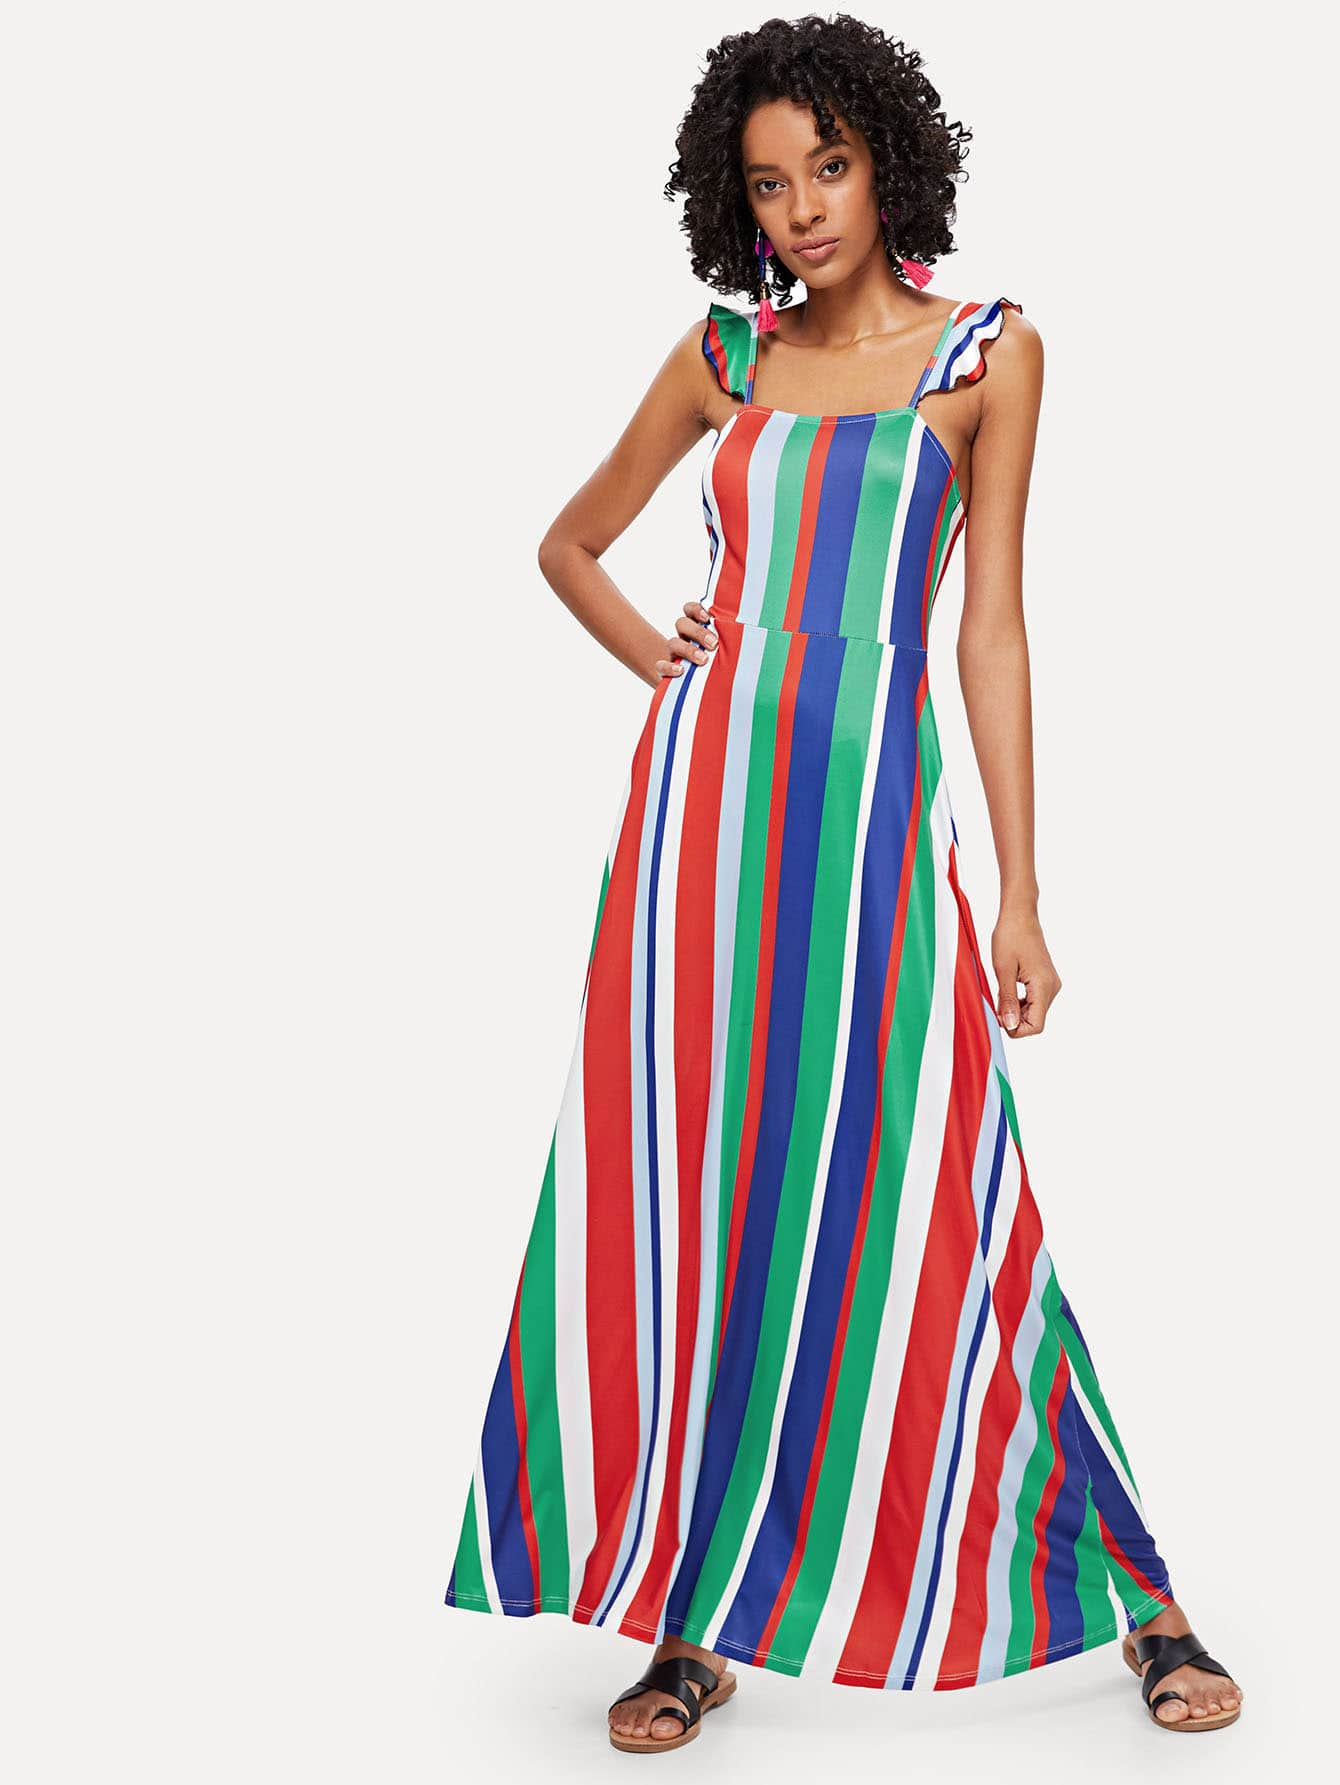 Ruffle Strap Fit and Flare Striped Dress ruffle strap and hem striped dress